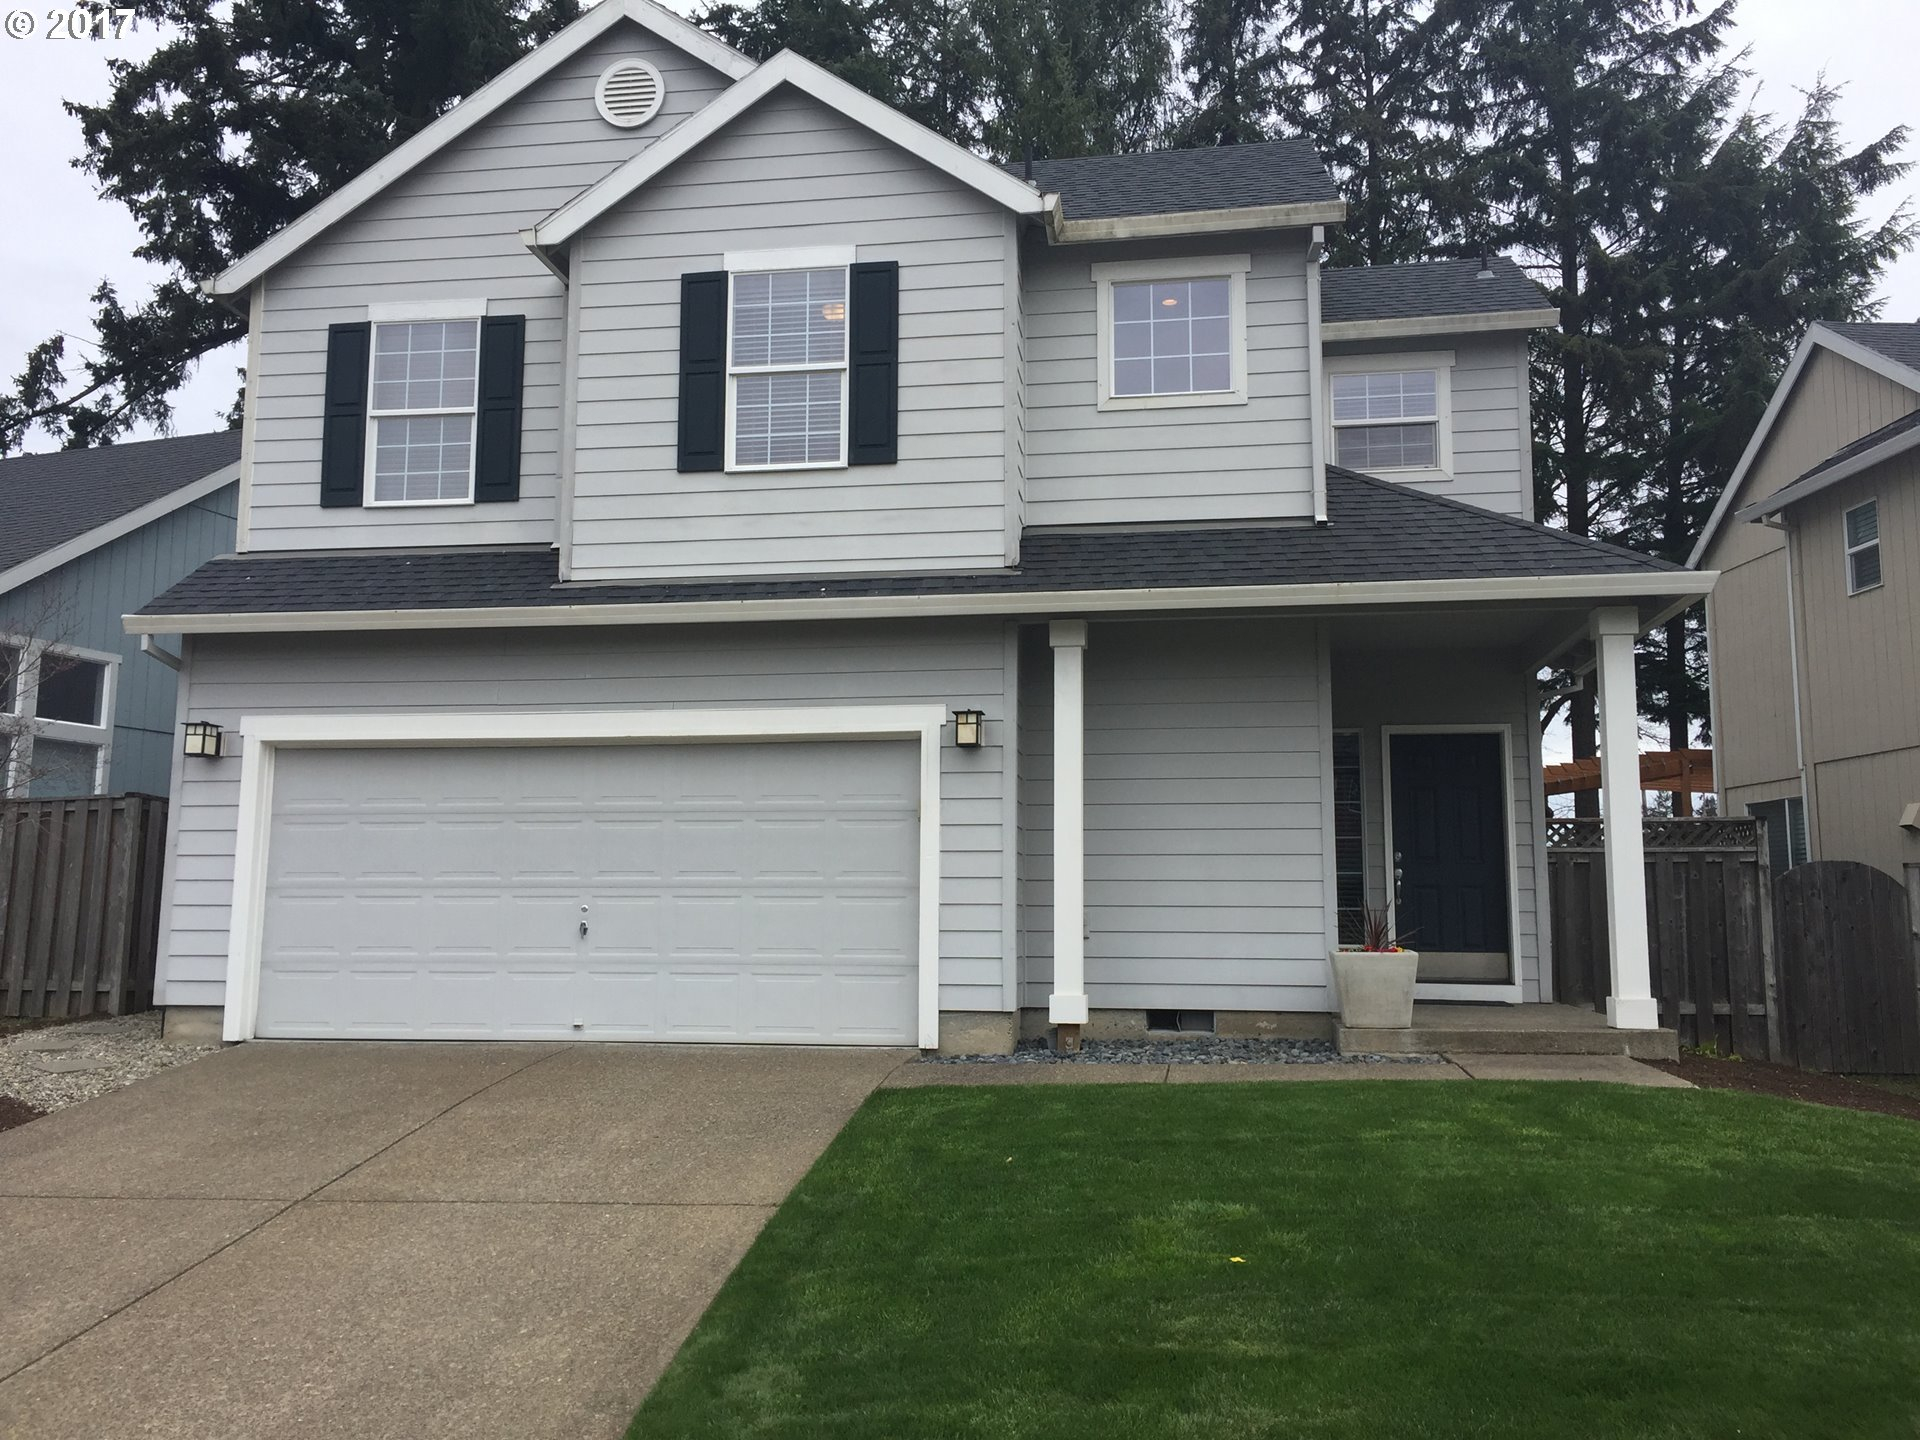 1331 sq. ft 3 bedrooms 2 bathrooms  House For Sale, Portland, OR